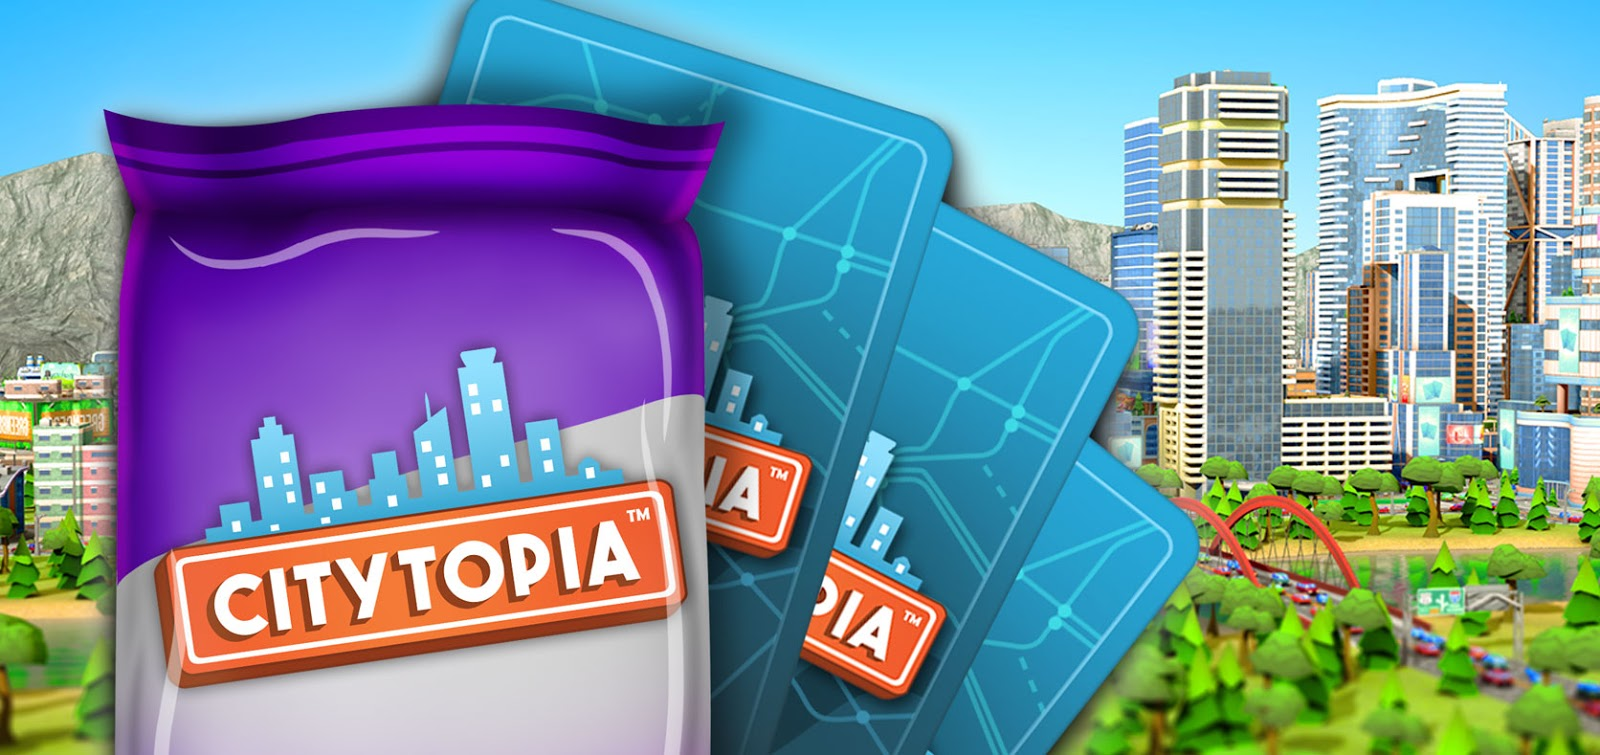 The Edge: Atari® Re-Releases Citytopia™ on iPhone, iPad and iPod touch and Now Available on Android Devices